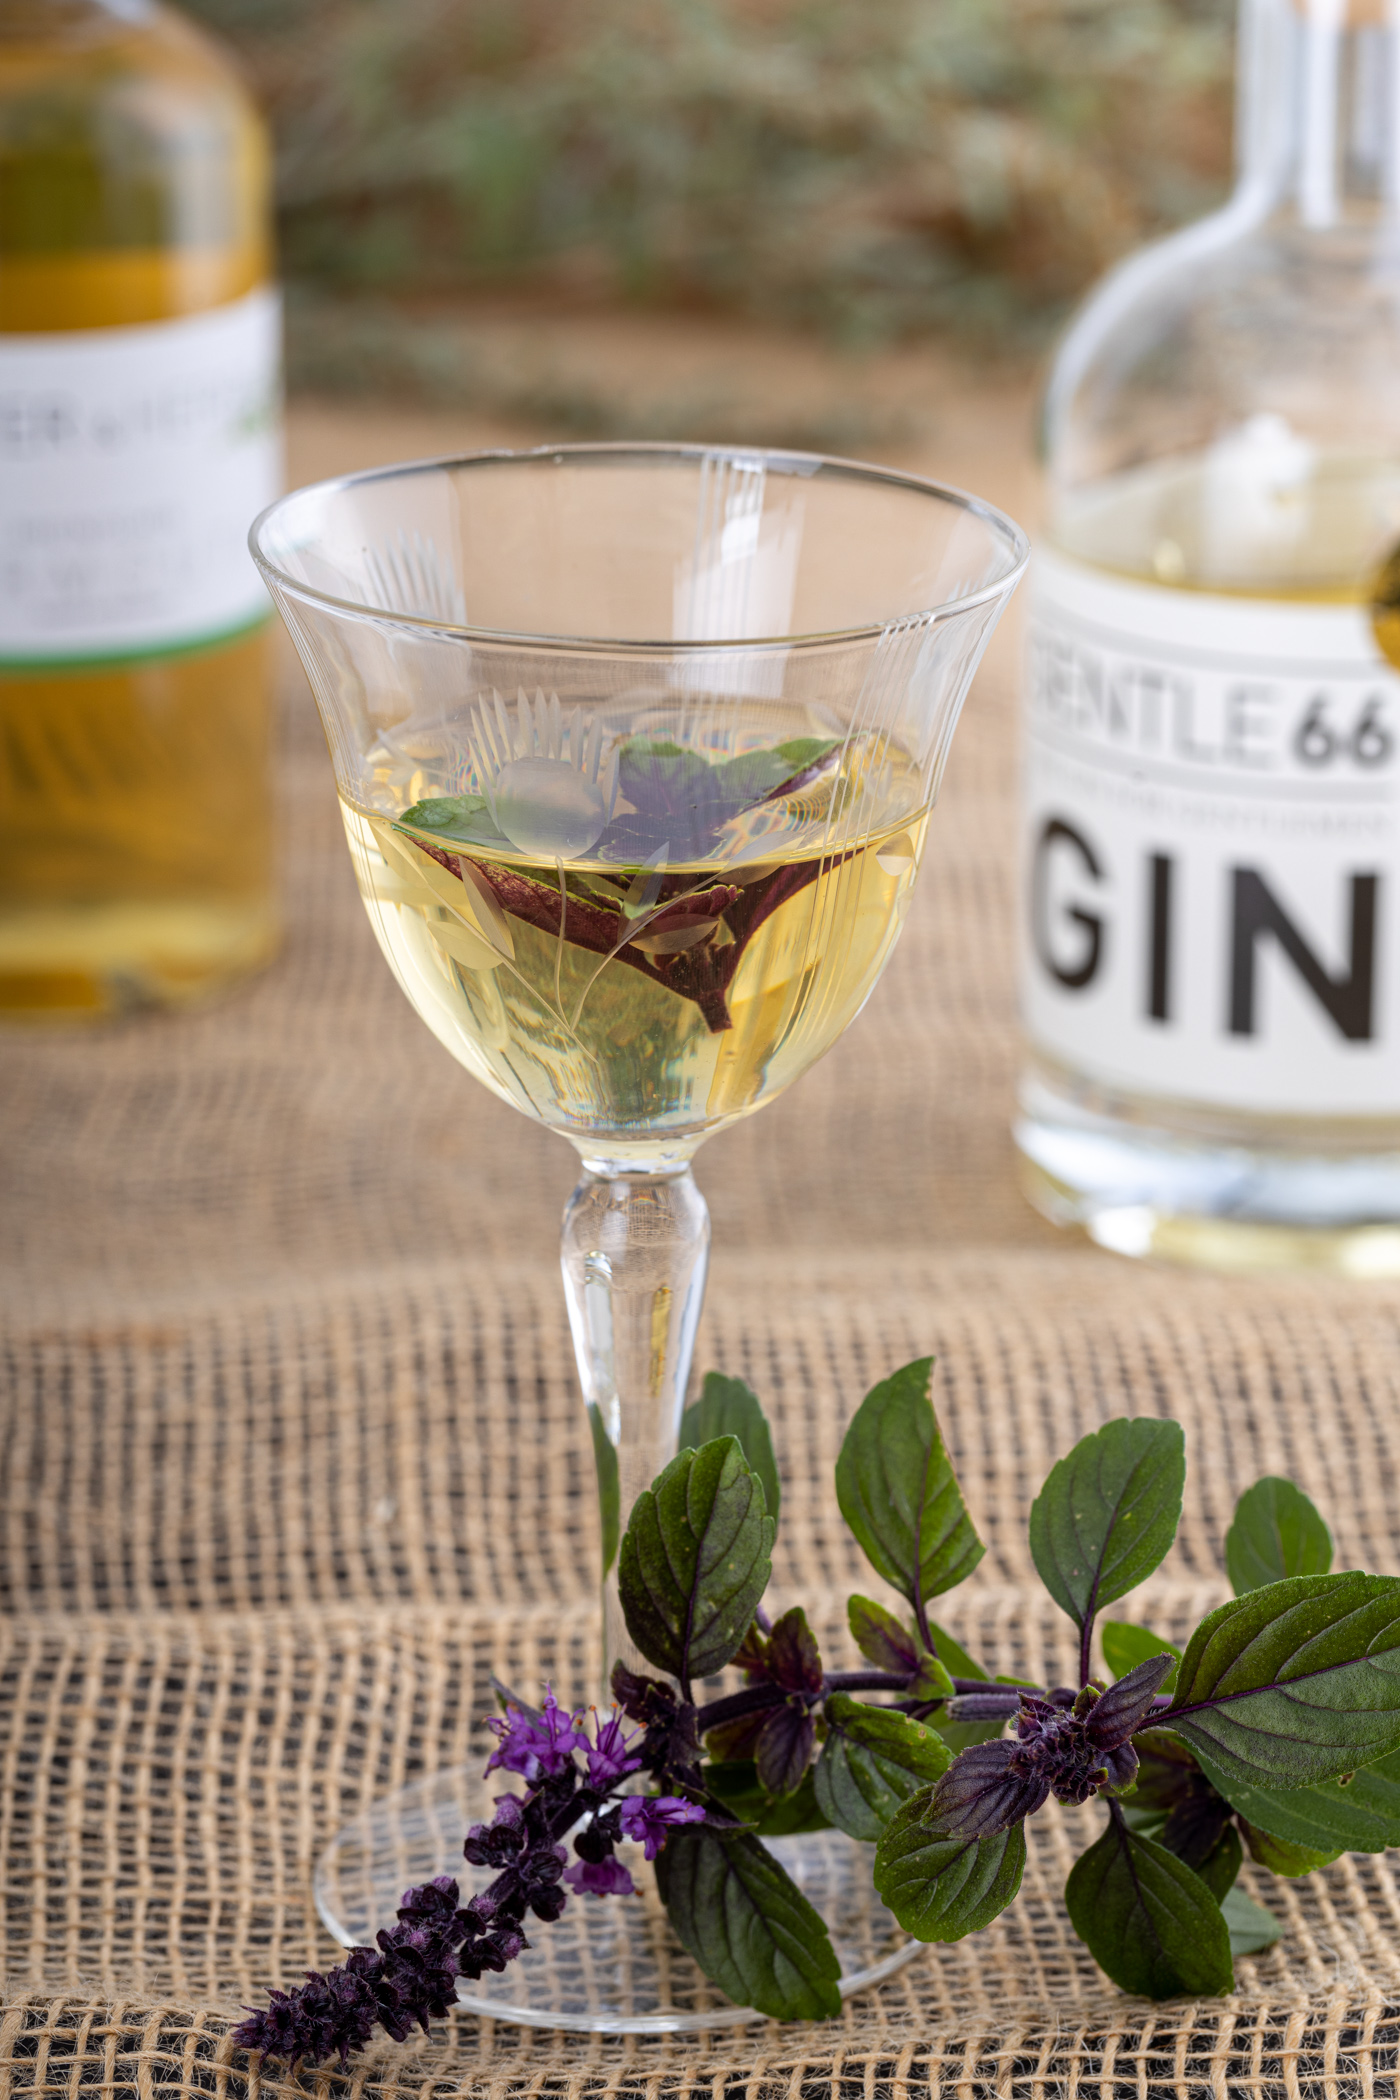 https://ueterandherbs.de/rezepte/martini-cocktail-2/